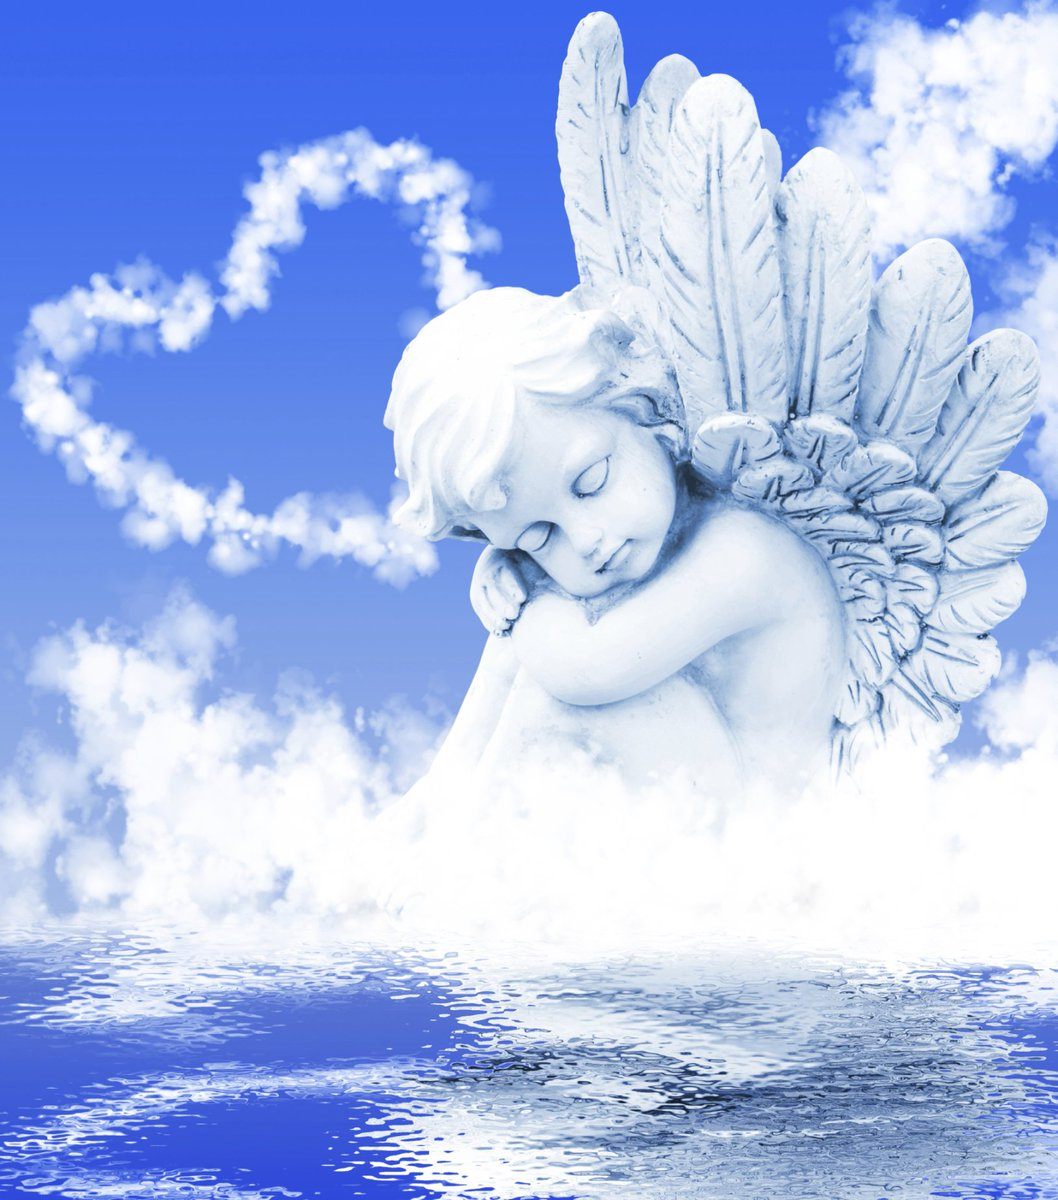 ANGELIC HEALING PRACTITIONER  https://www. linkedin.com/pulse/angelic- healing-practitioner-brenda-rachel?published=t &nbsp; …  #humanitywithheart #angels #spiritual #inspiration #guide #healing #purpose #direction <br>http://pic.twitter.com/ARt61meIdr